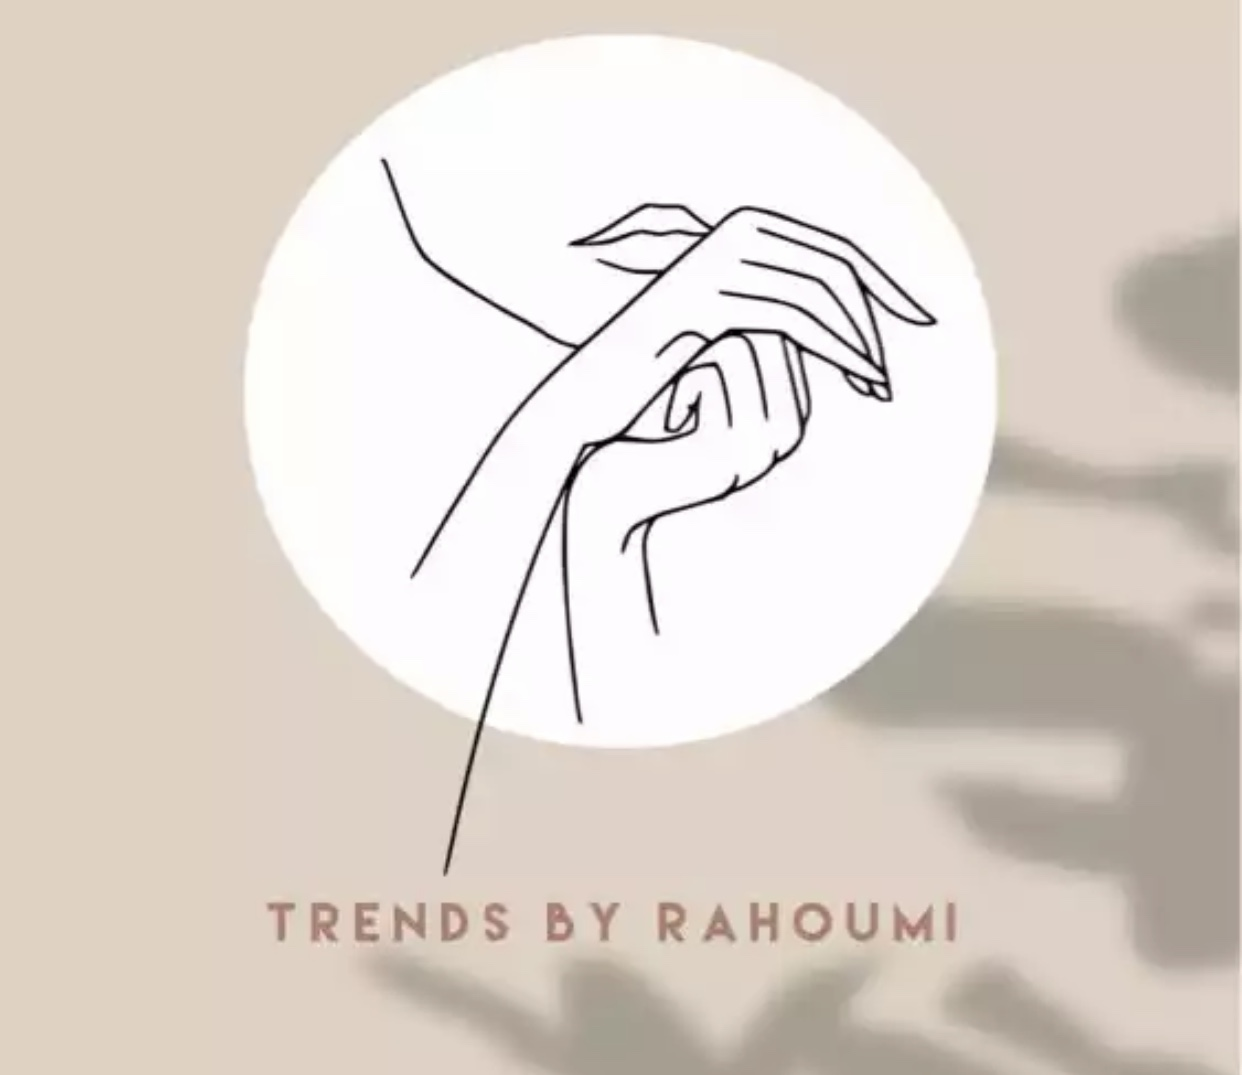 Trends By Rahoumi